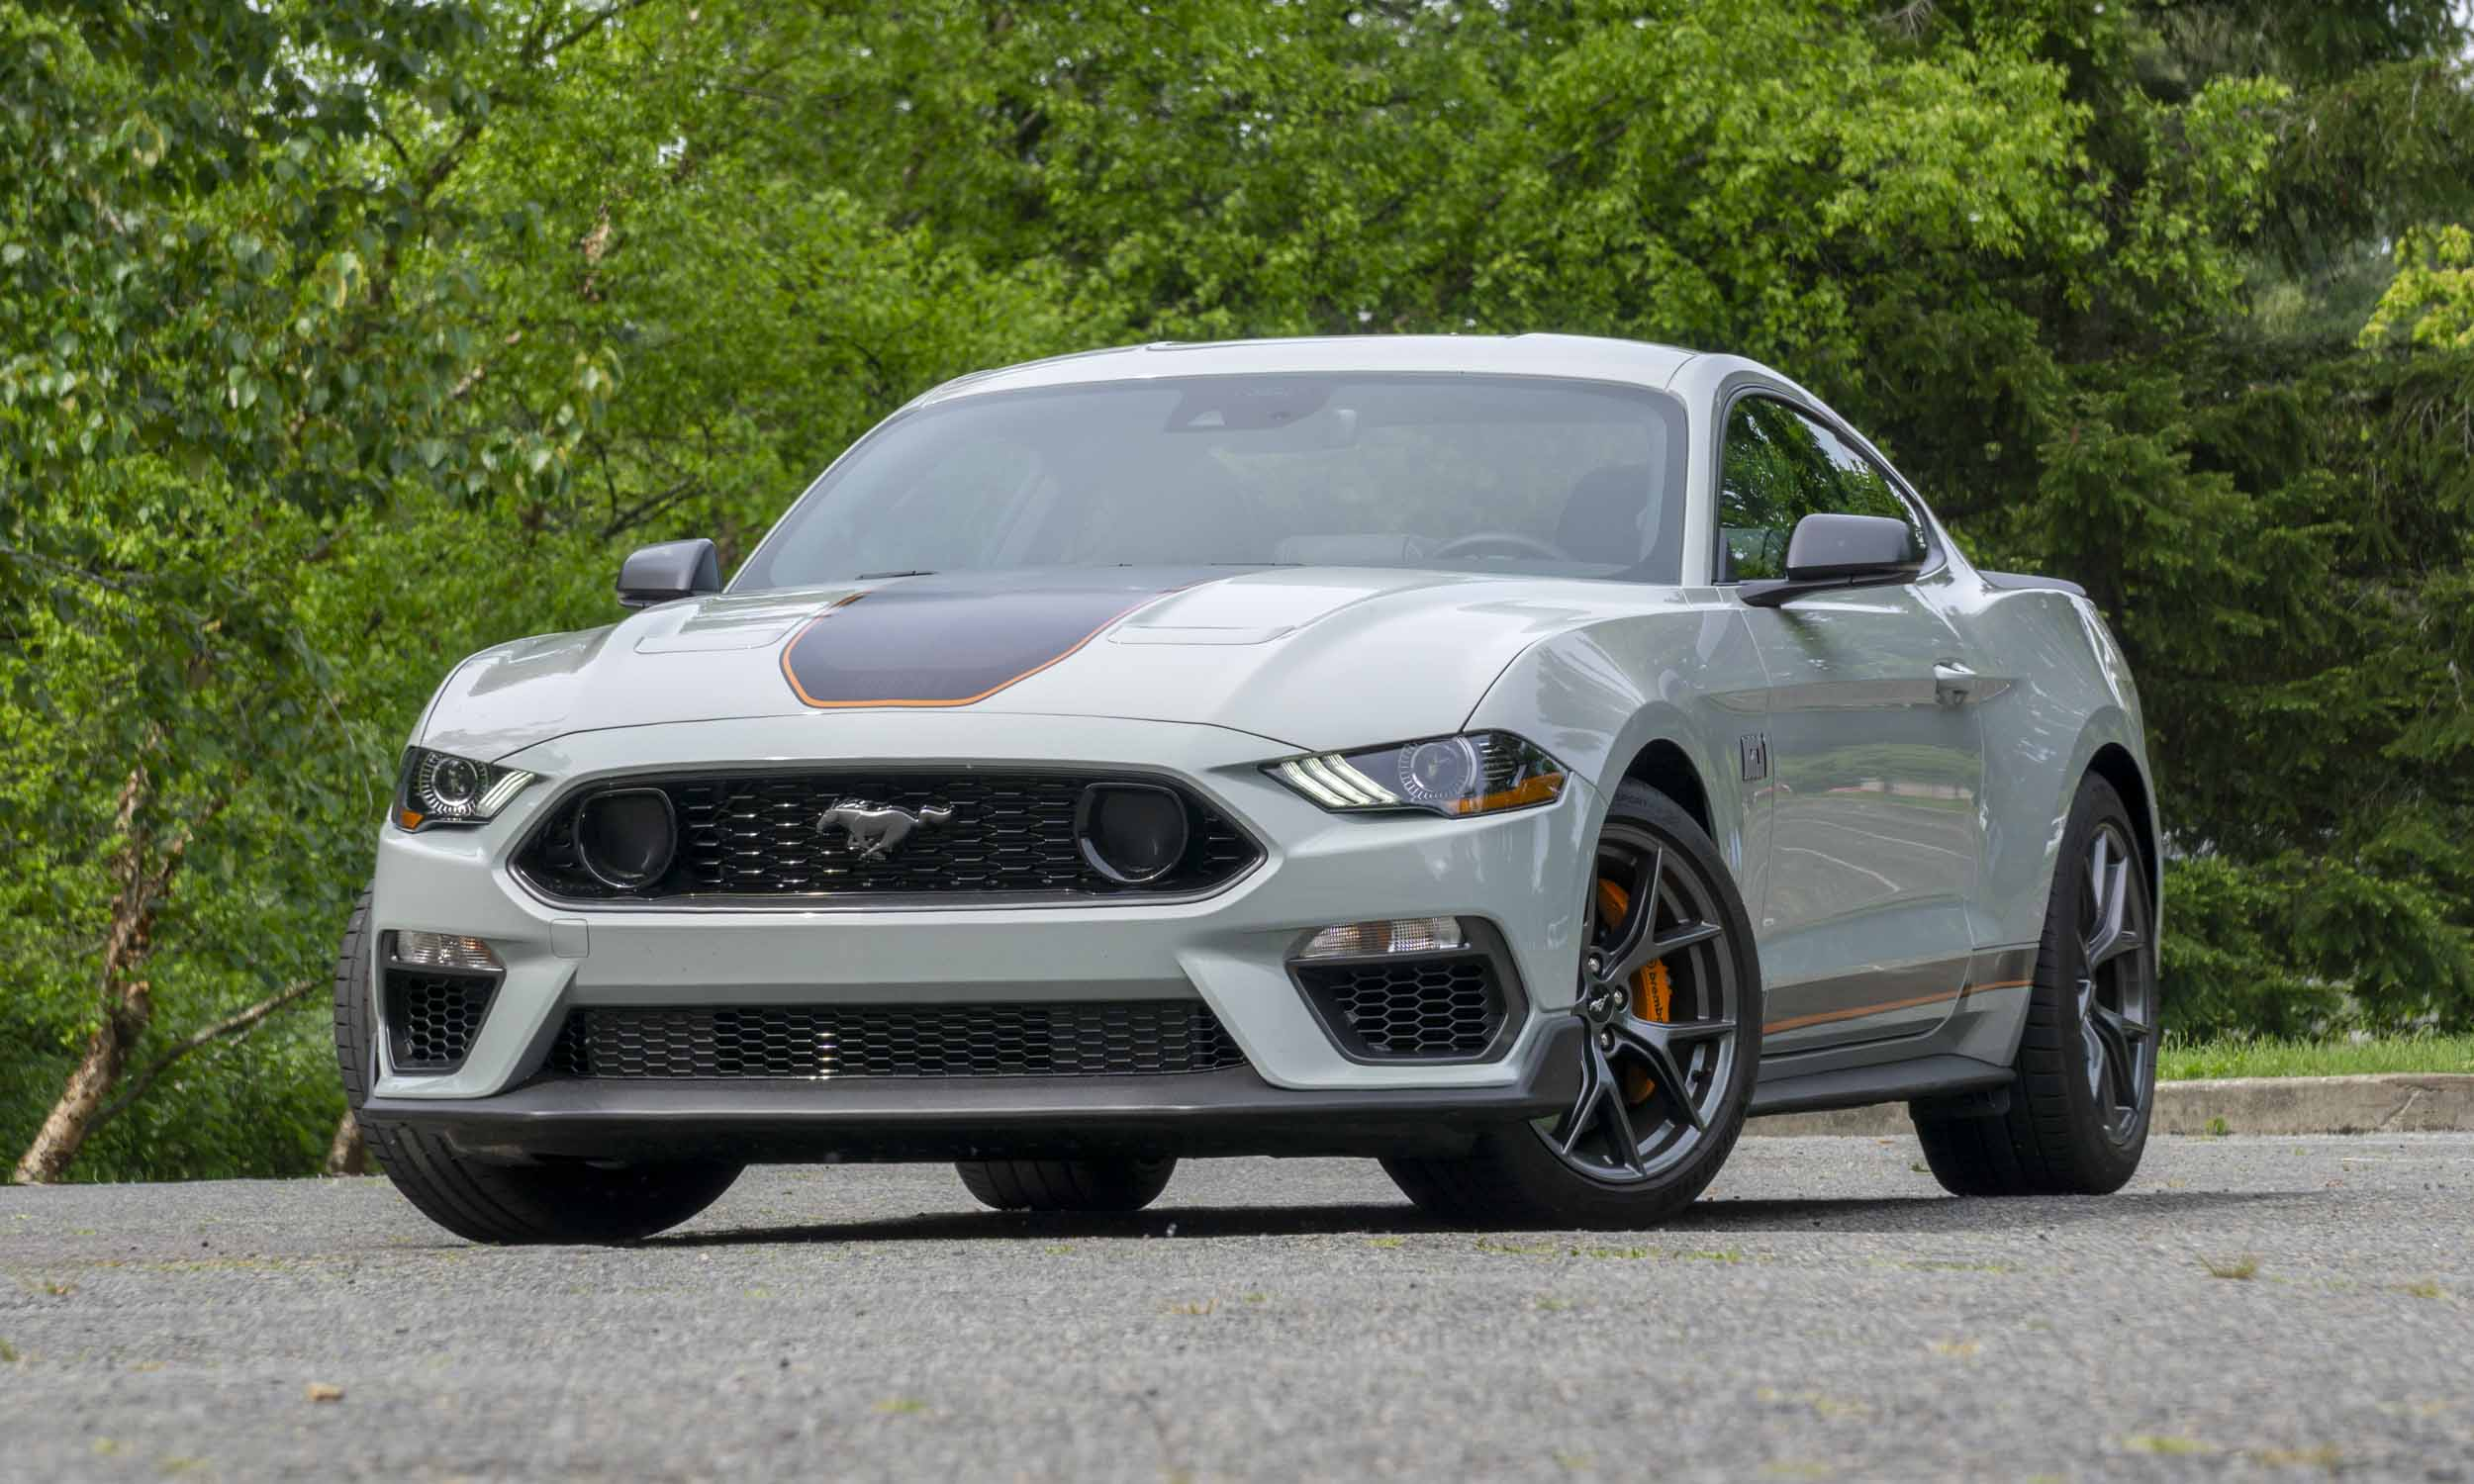 2021 Ford Mustang Mach 1 Review Performance and Stylenbsp